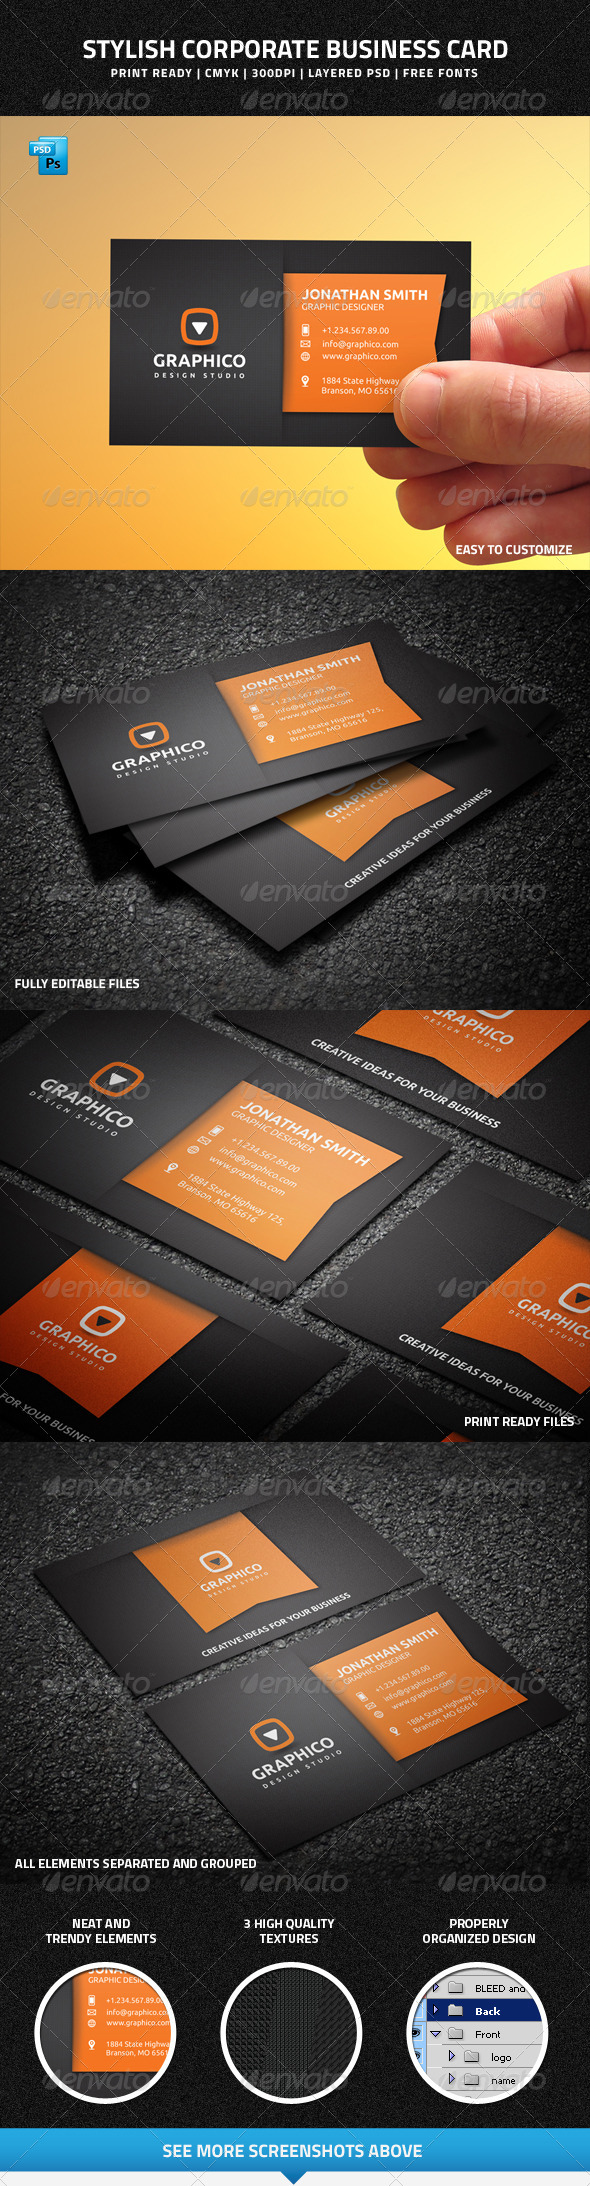 GraphicRiver Stylish Corporate Business Card 7894686